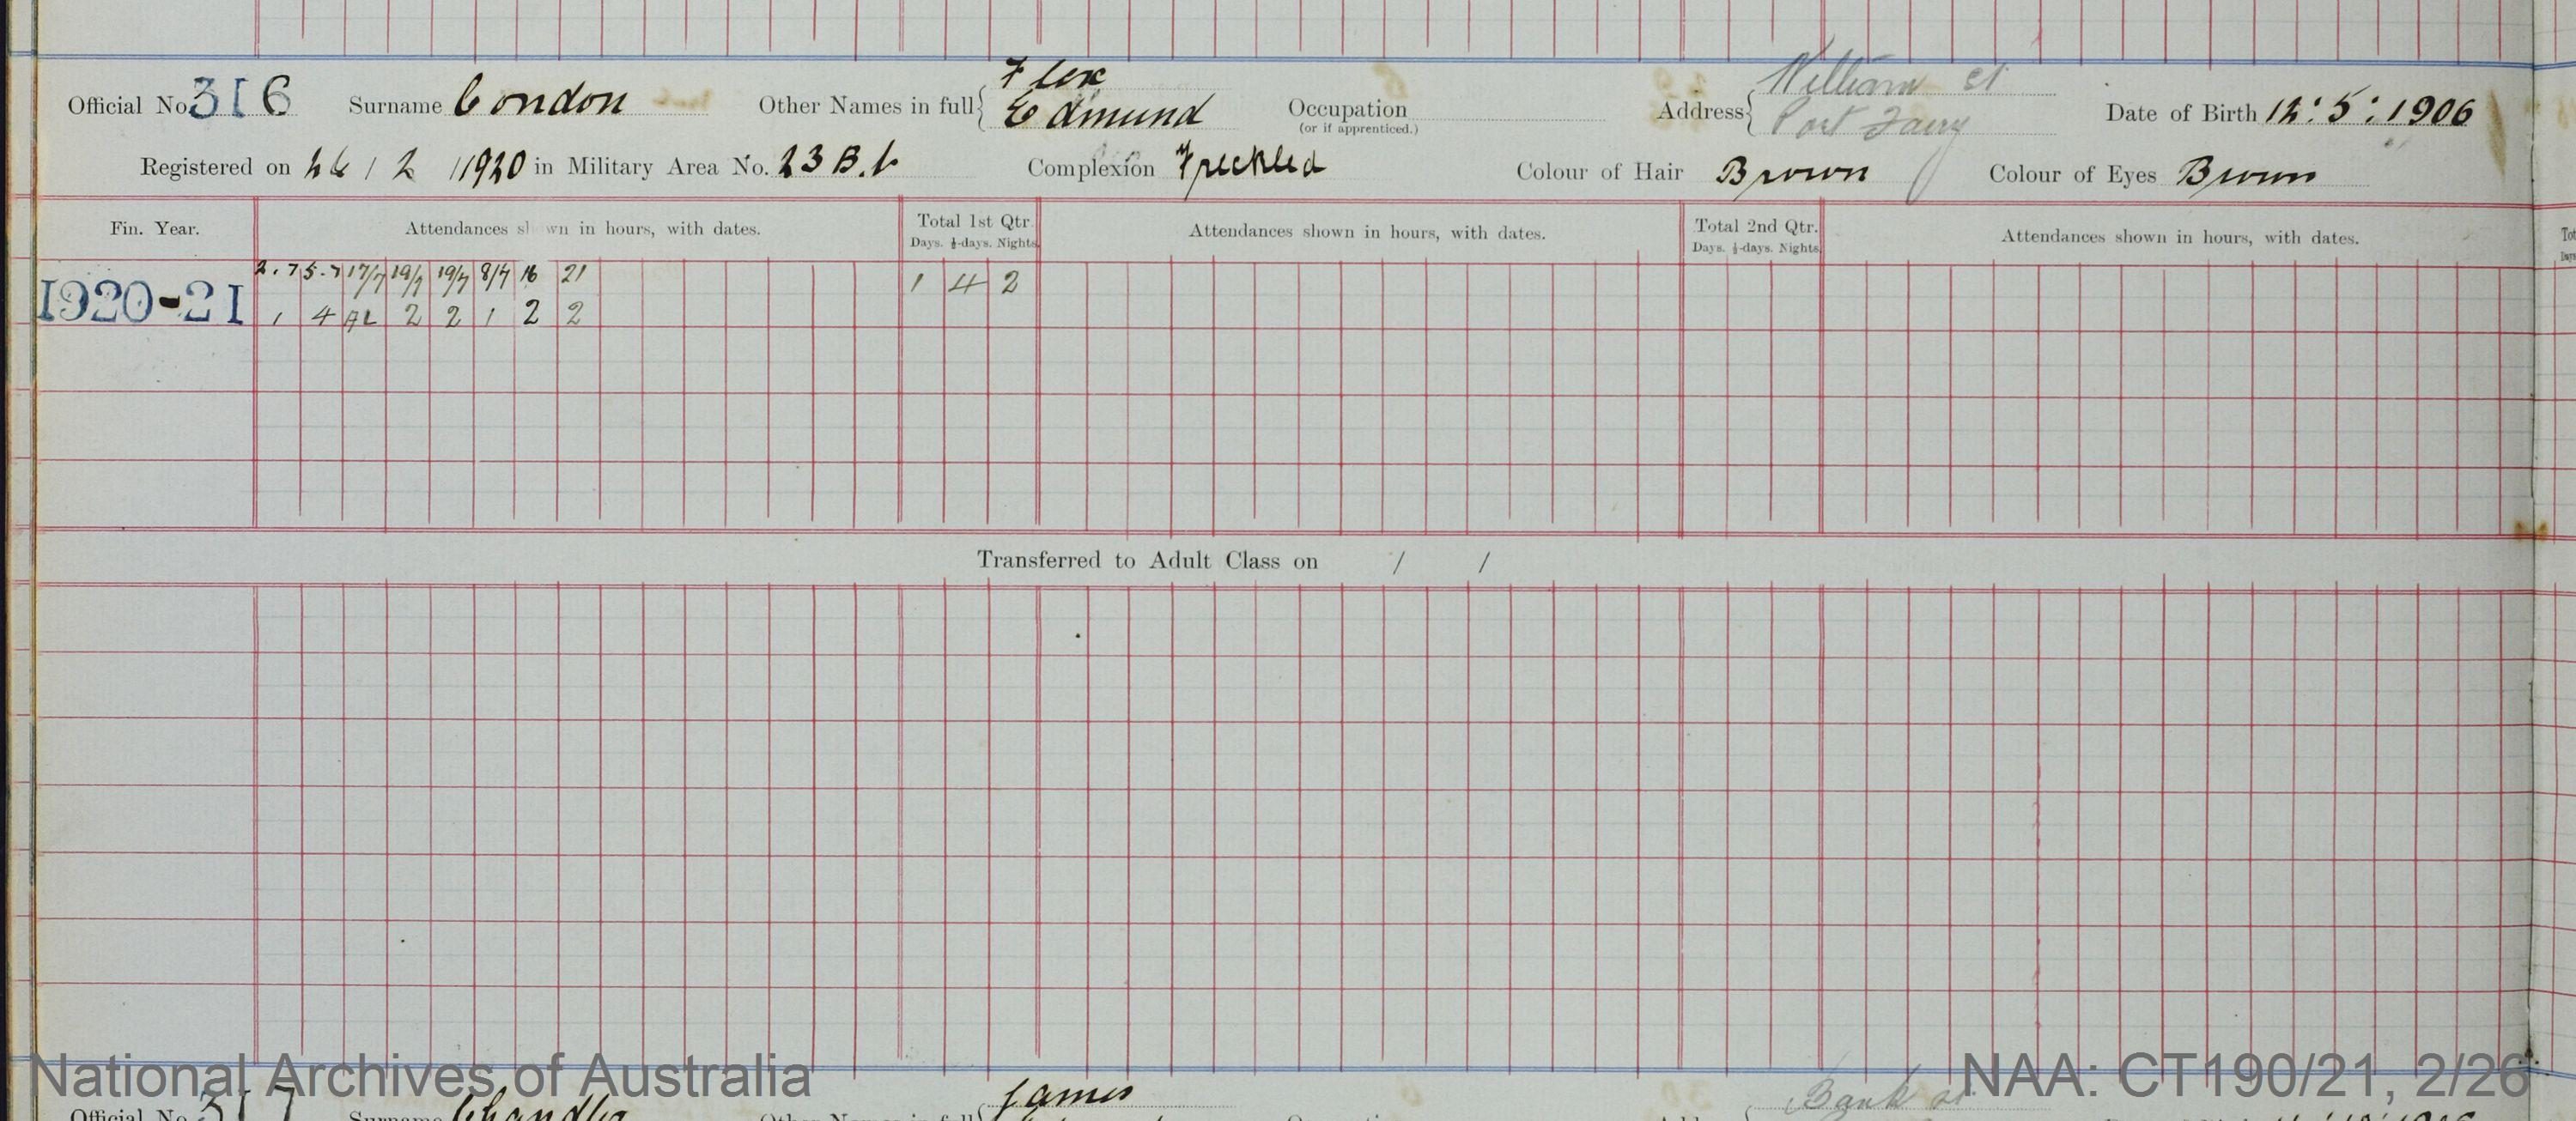 SURNAME - CONDON;  GIVEN NAME(S) - Flex Edmund;  OFFICIAL NUMBER - 316;  DATE OF BIRTH - 12 May 1906;  PLACE OF BIRTH - [Unknown];  NEXT OF KIN - [Unknown] ;  SERVICE/STATION - Port Fairy;  REGISTRATION DATE - 26 February 1920